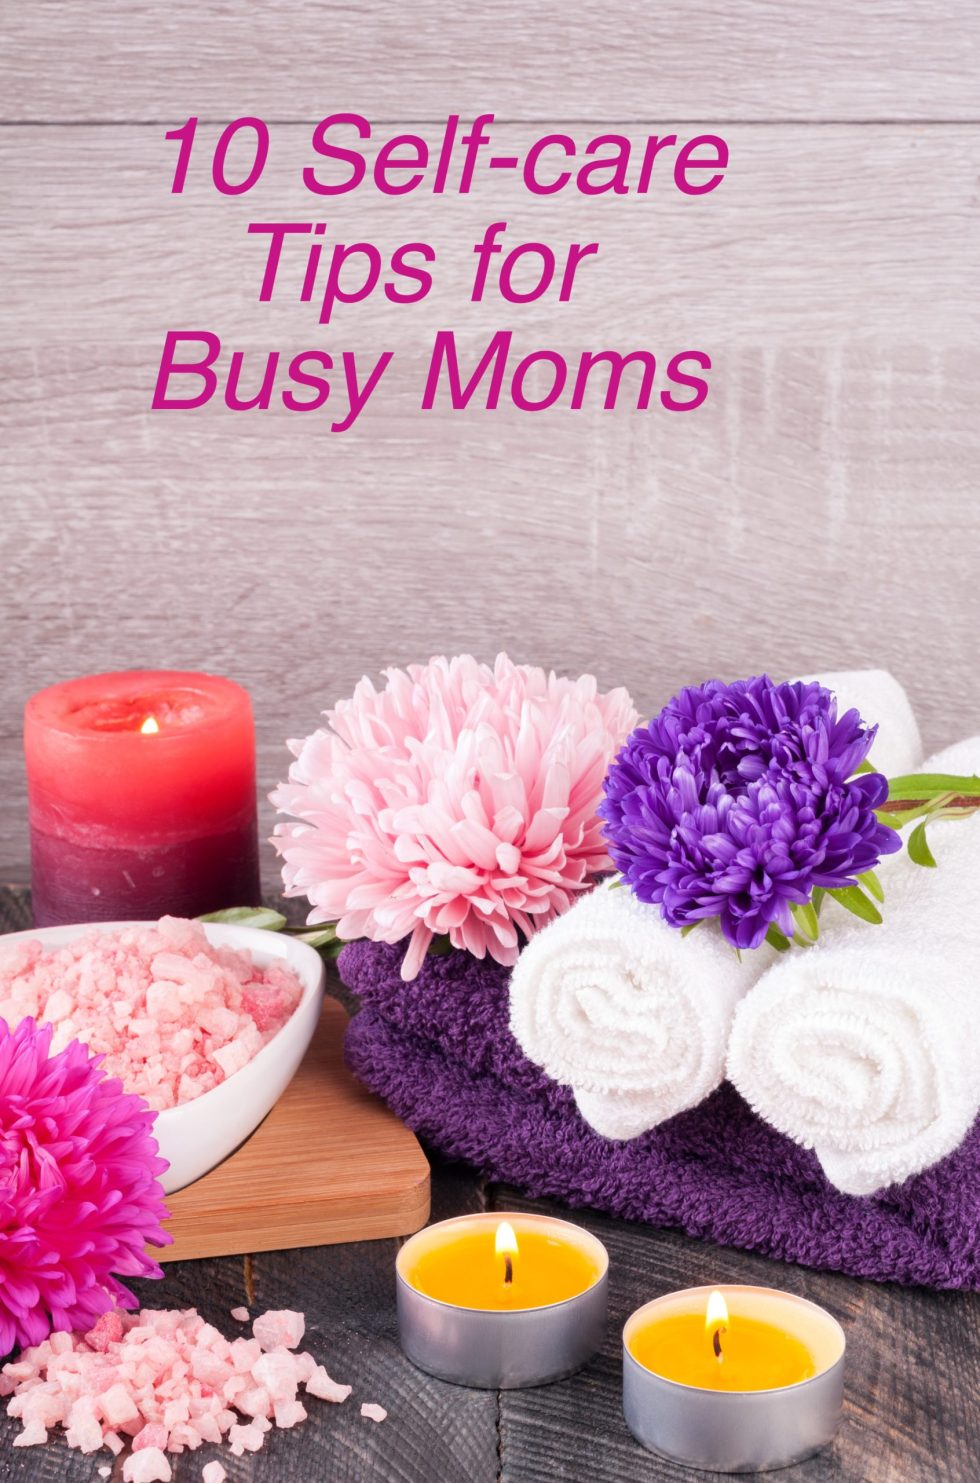 10 Self-care tips for busy moms